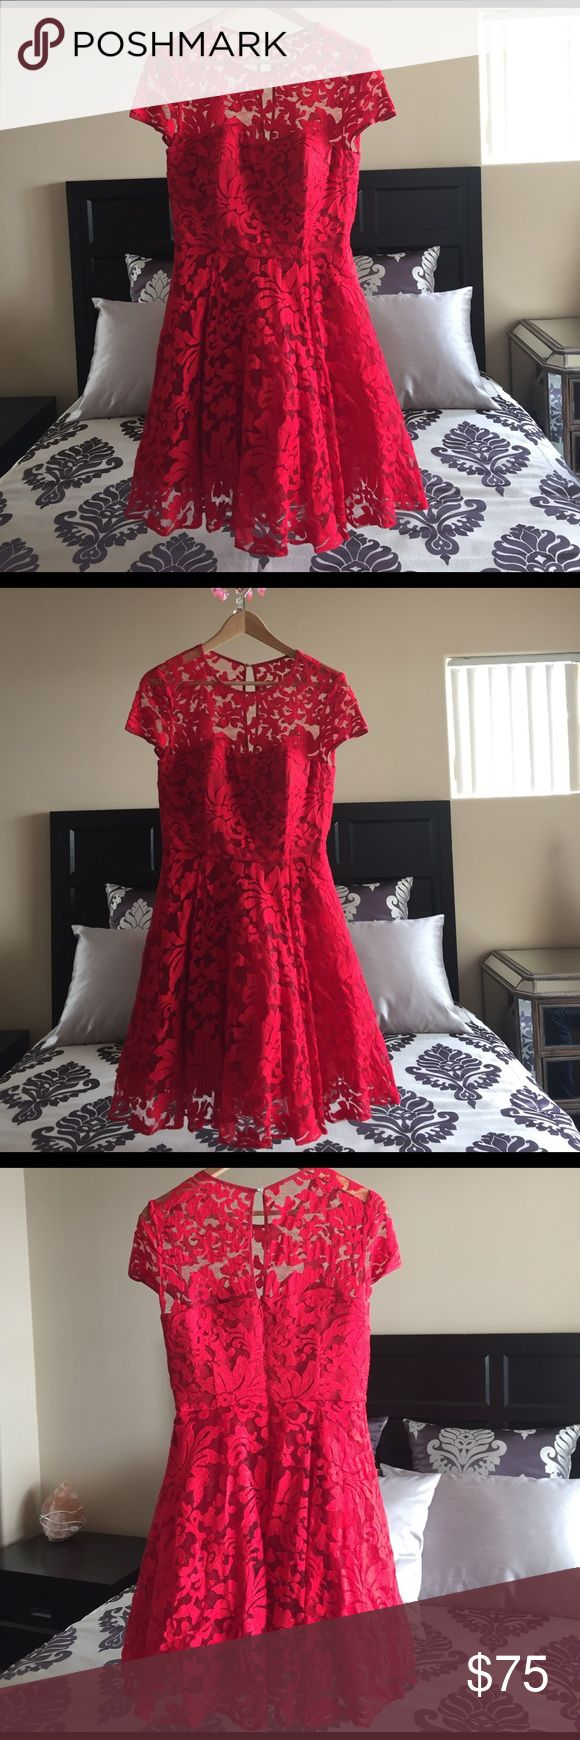 TED BAKER Red Dress Size 2 $75 TED BAKER Red Dress Size 2 $75 Ted Baker London Dresses Prom